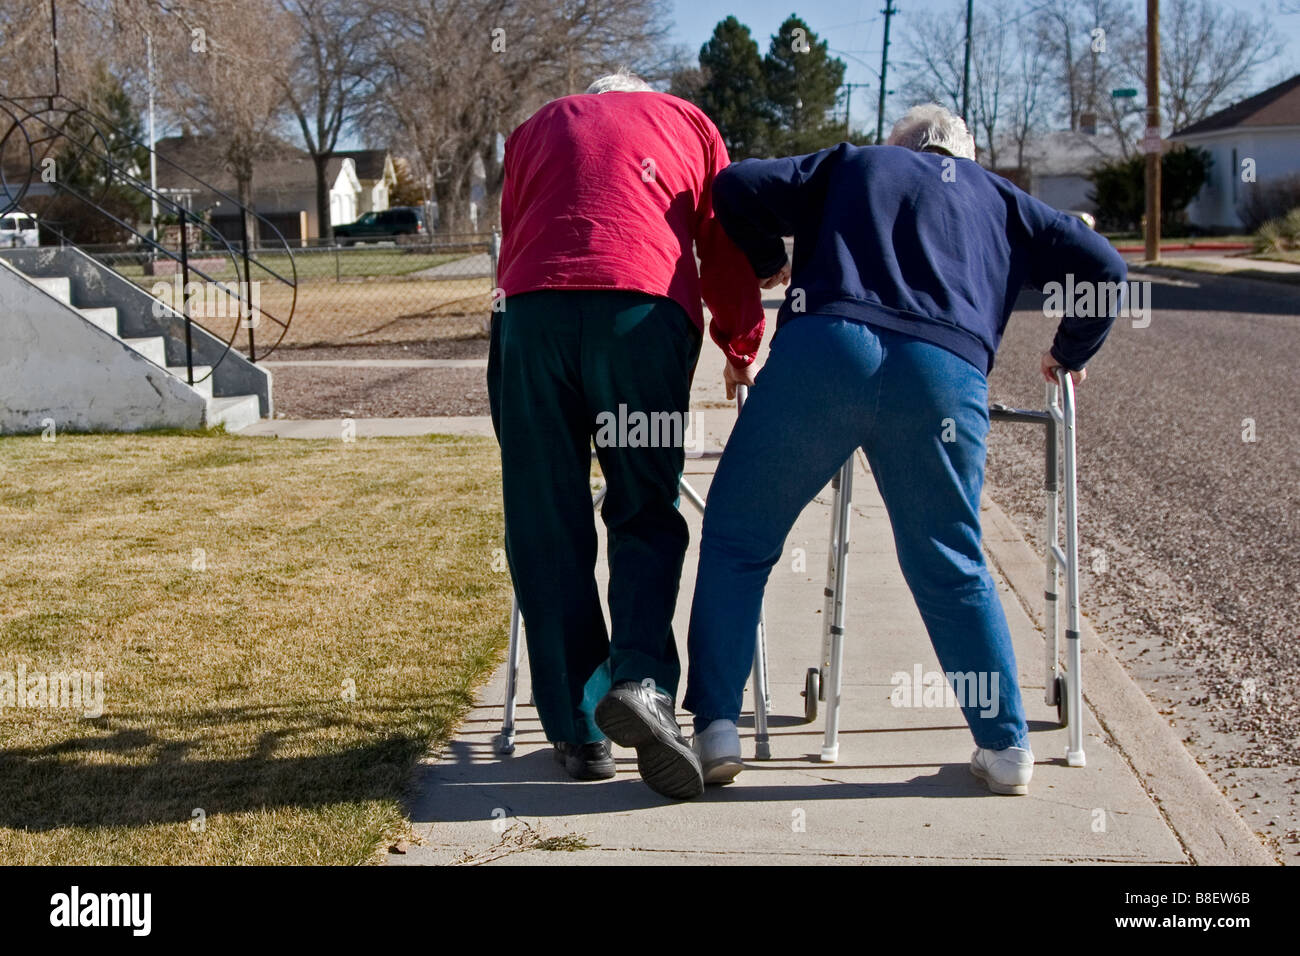 Two elderly senior citizens walk away using walkers, the woman tripping the man, humour, humor, one of four in series - Stock Image